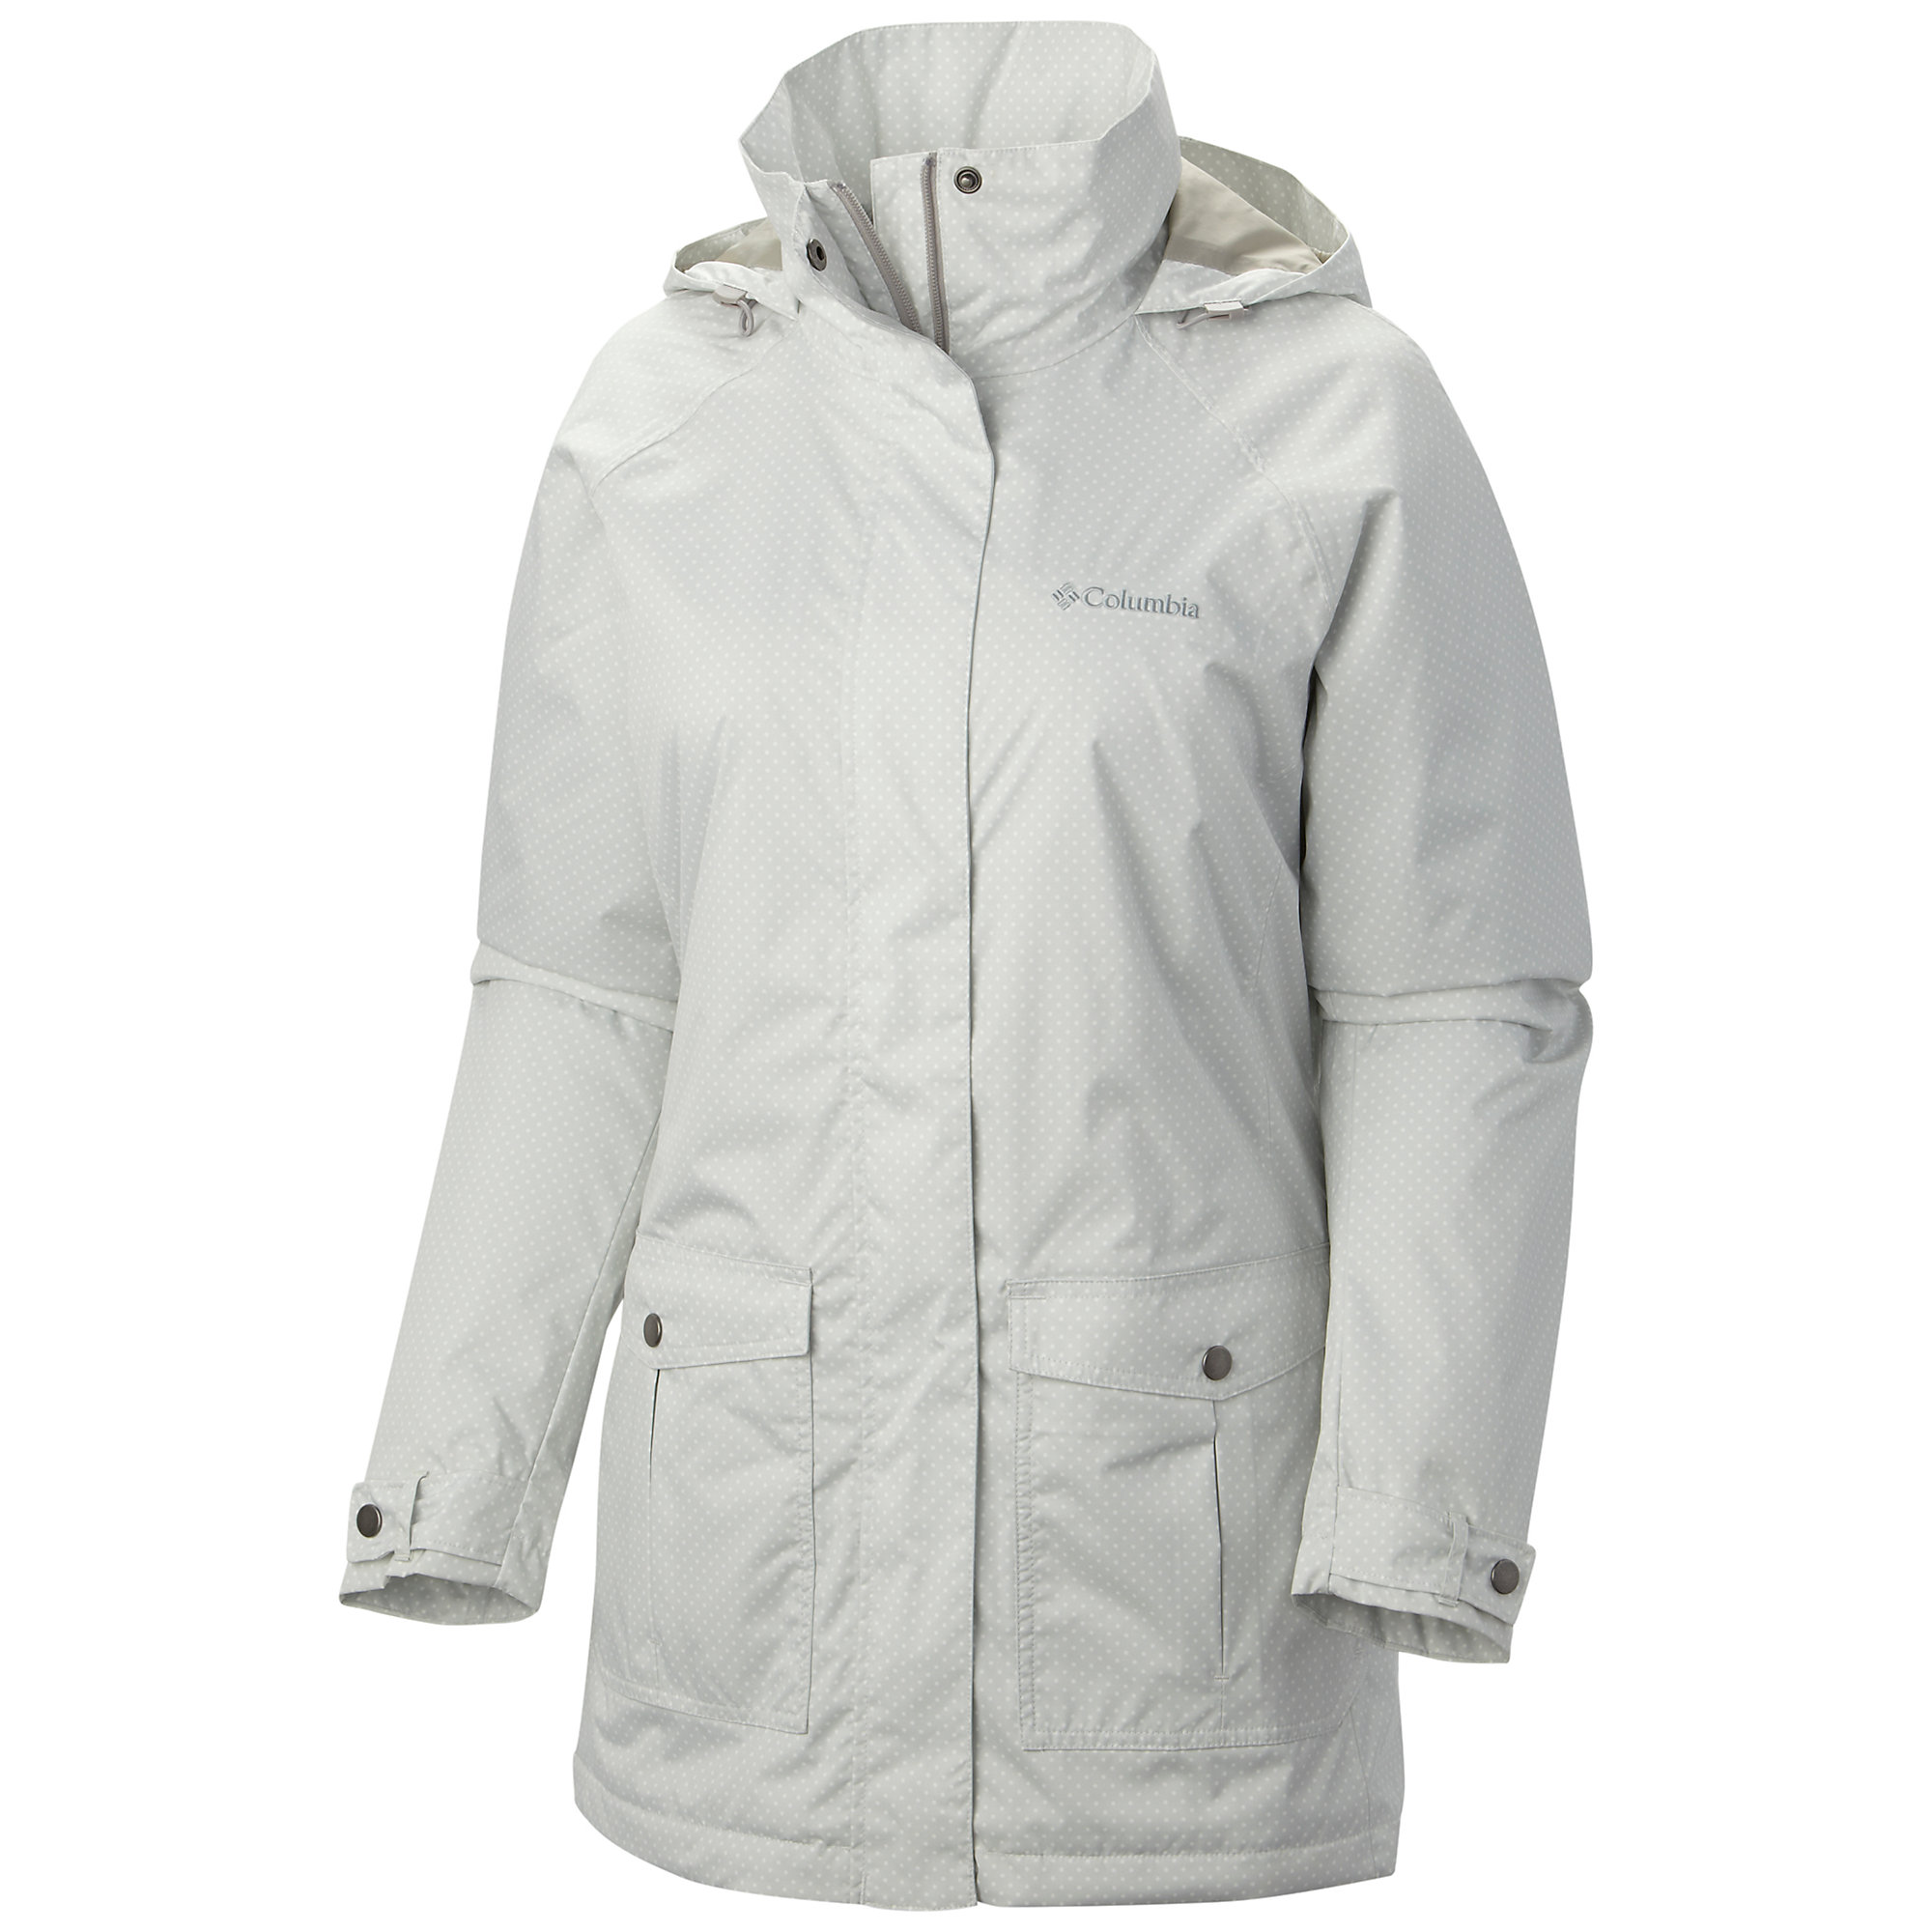 Columbia Dry Spell Jacket